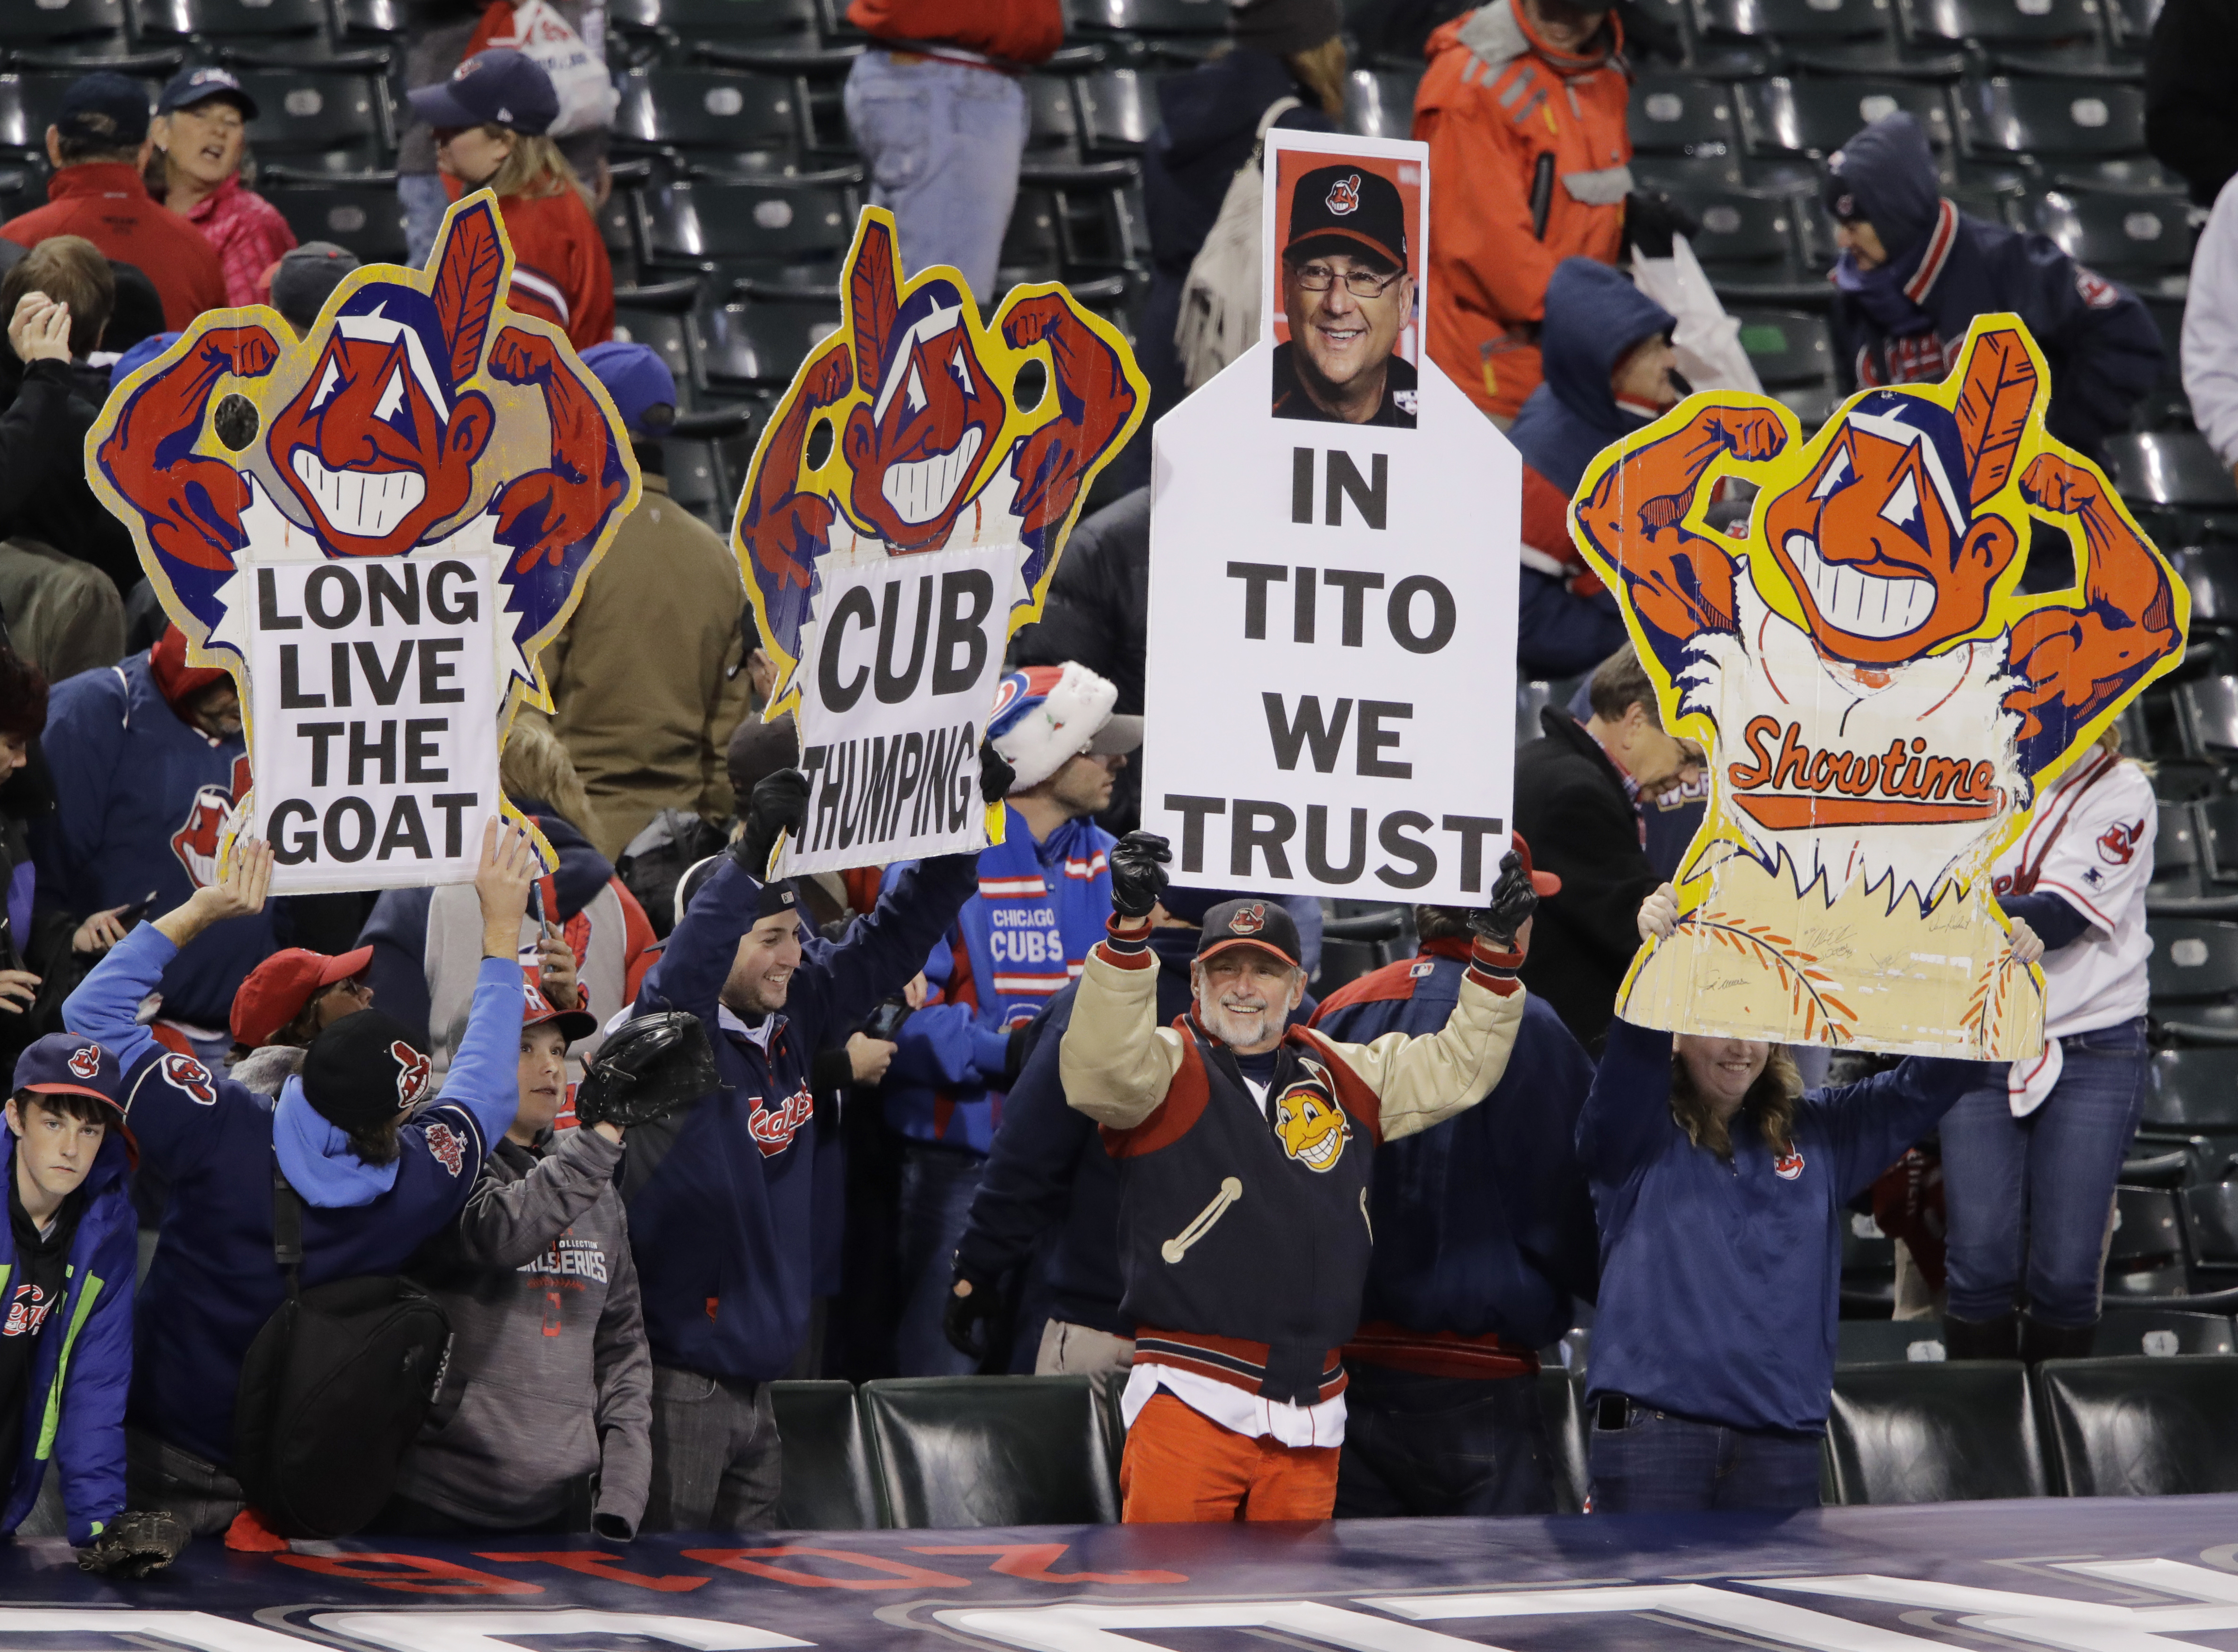 Fans hold up signs after Game 1 of the Major League Baseball World Series between the Cleveland Indians and the Chicago Cubs Tuesday, Oct. 25, 2016, in Cleveland. The Indians won 6-0 to take a 1-0 lead in the series. (AP Photo/Gene J. Puskar)